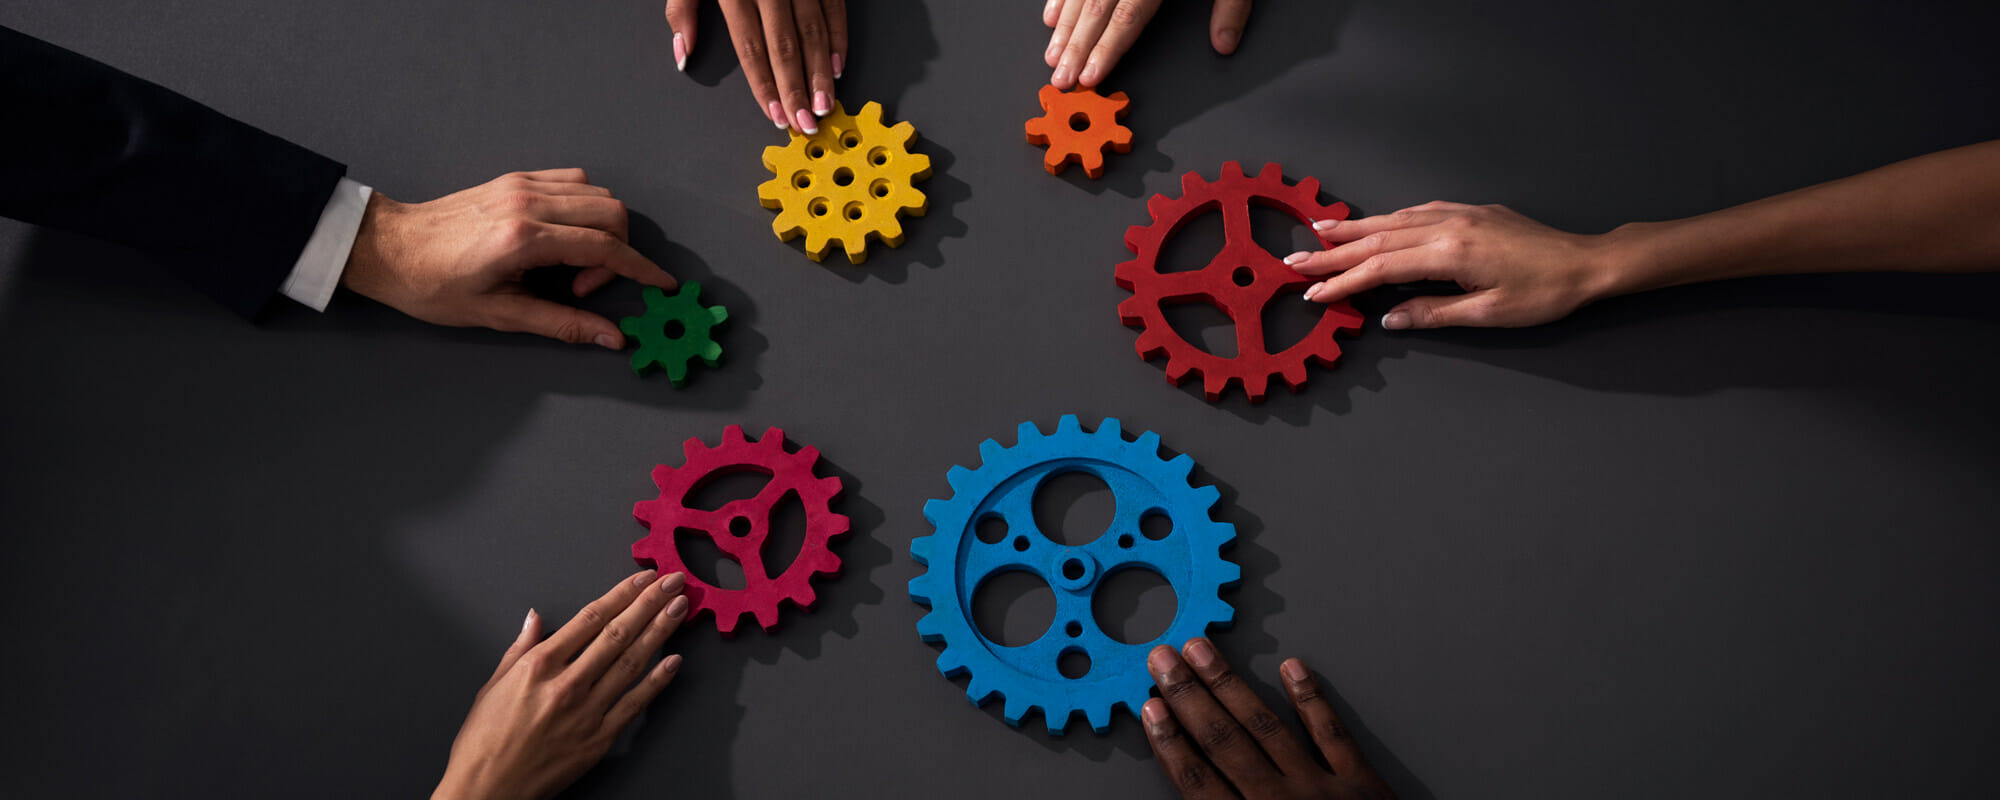 diverse group of individuals pushing colorful gears on a table to each other